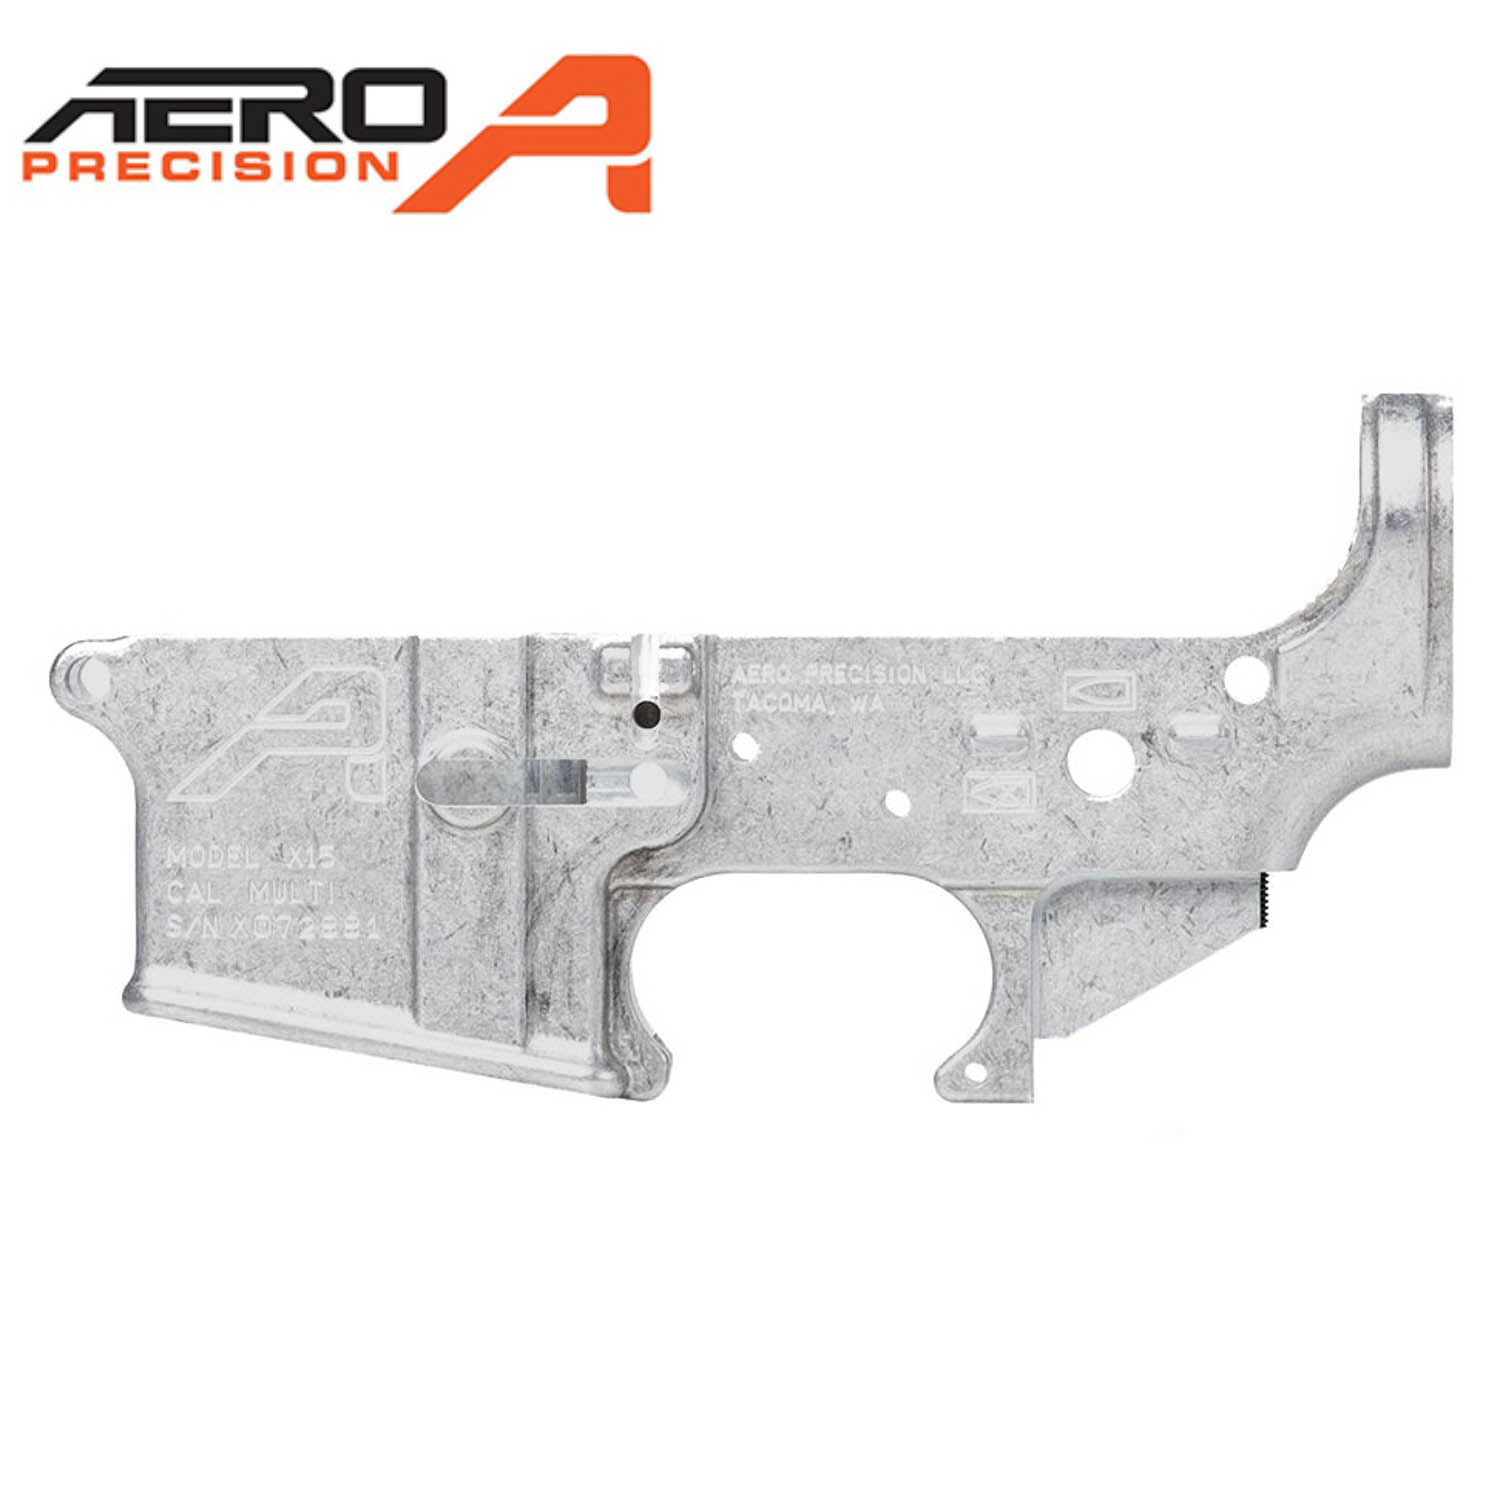 Aero Precision Stripped AR-15 Lower Receiver, Gen 2, Uncoated: Midwest Gun  Works